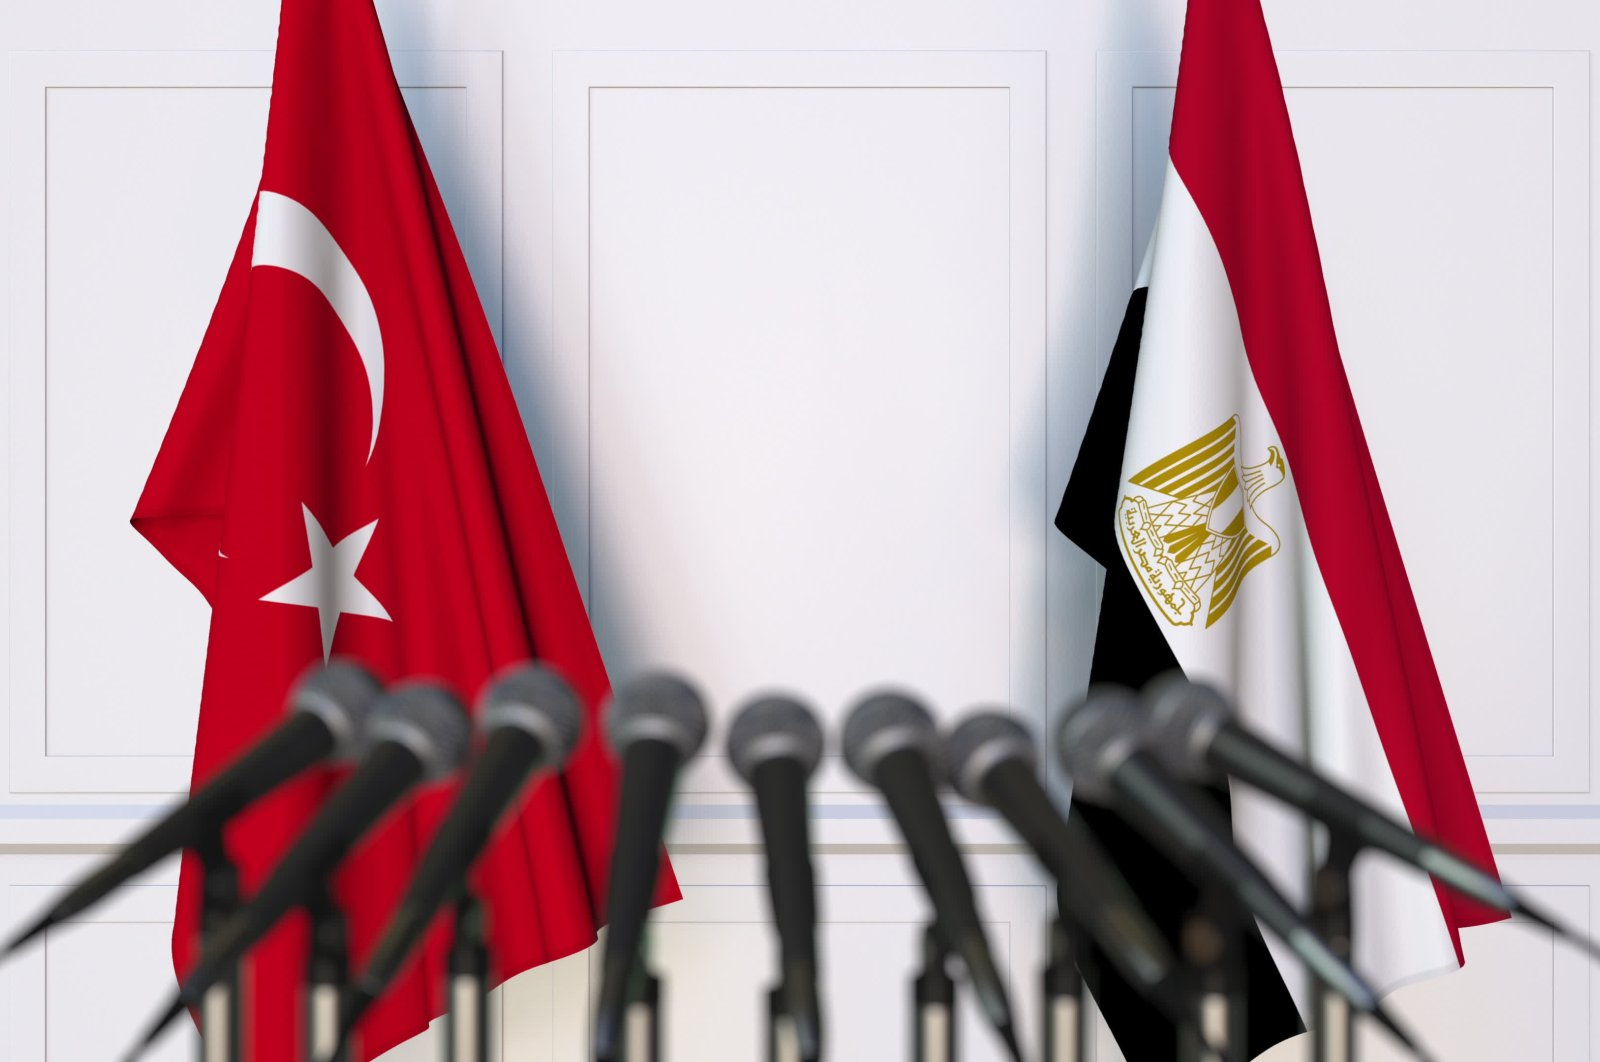 The flags of Turkey and Egypt are seen in front of microphones in this photo. (Photo by Shutterstock)